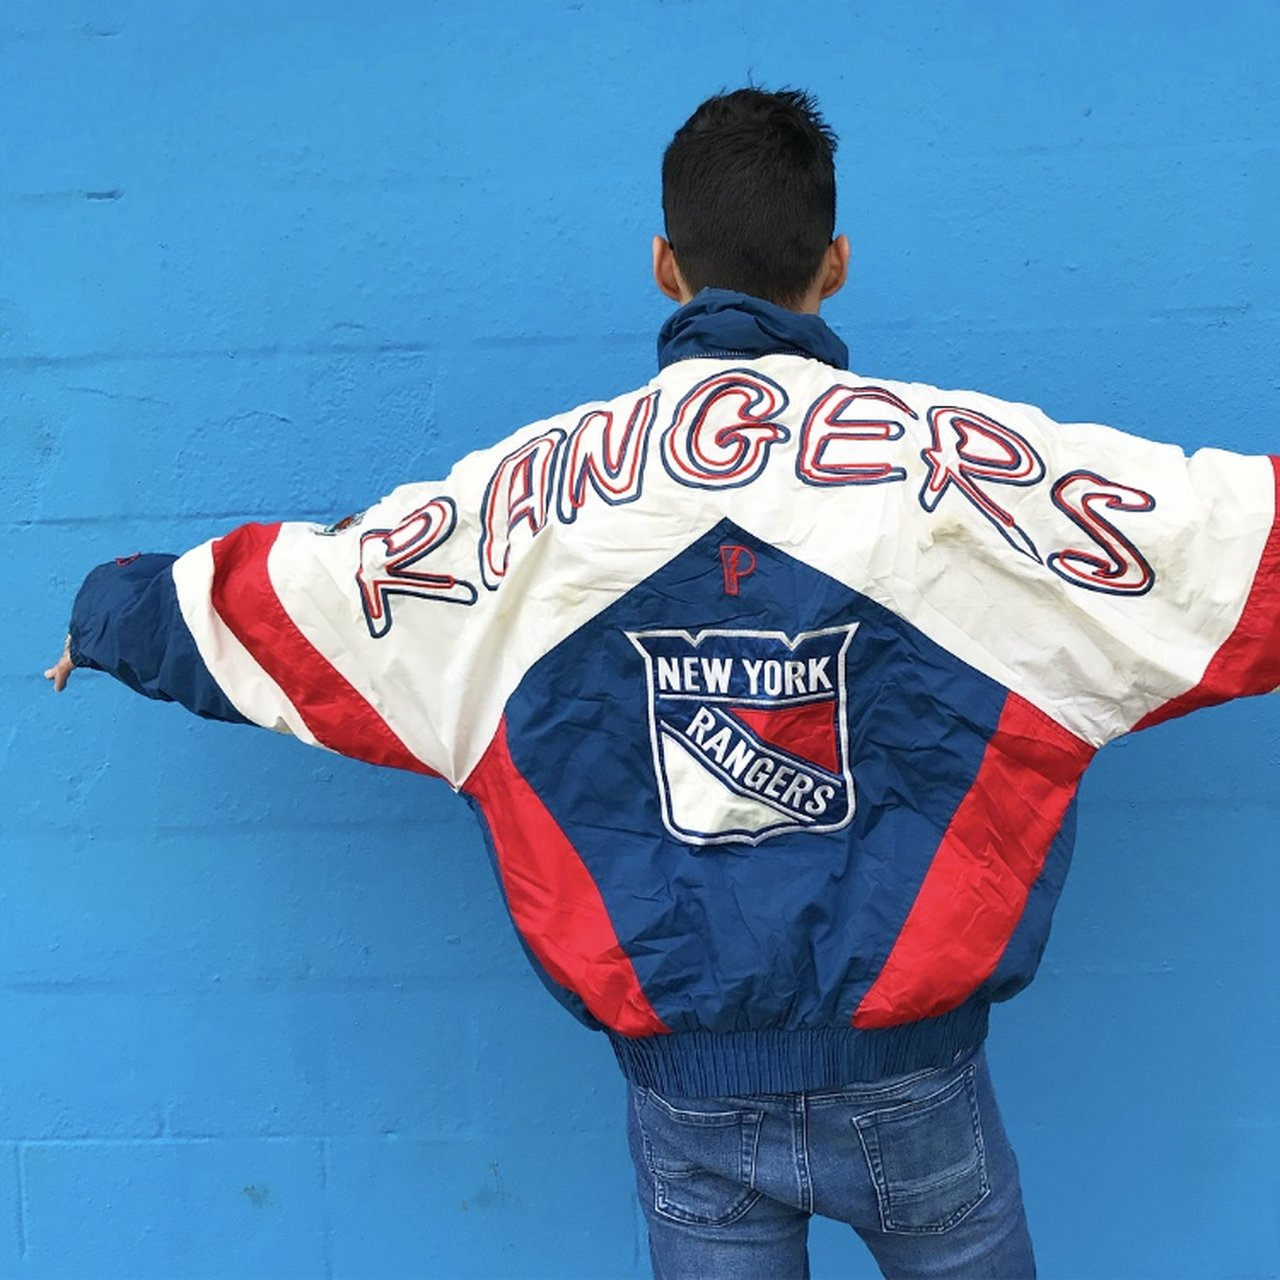 New York Rangers Vintage NHL Pro Player Insulated Jacket Has - Depop e72d8050d